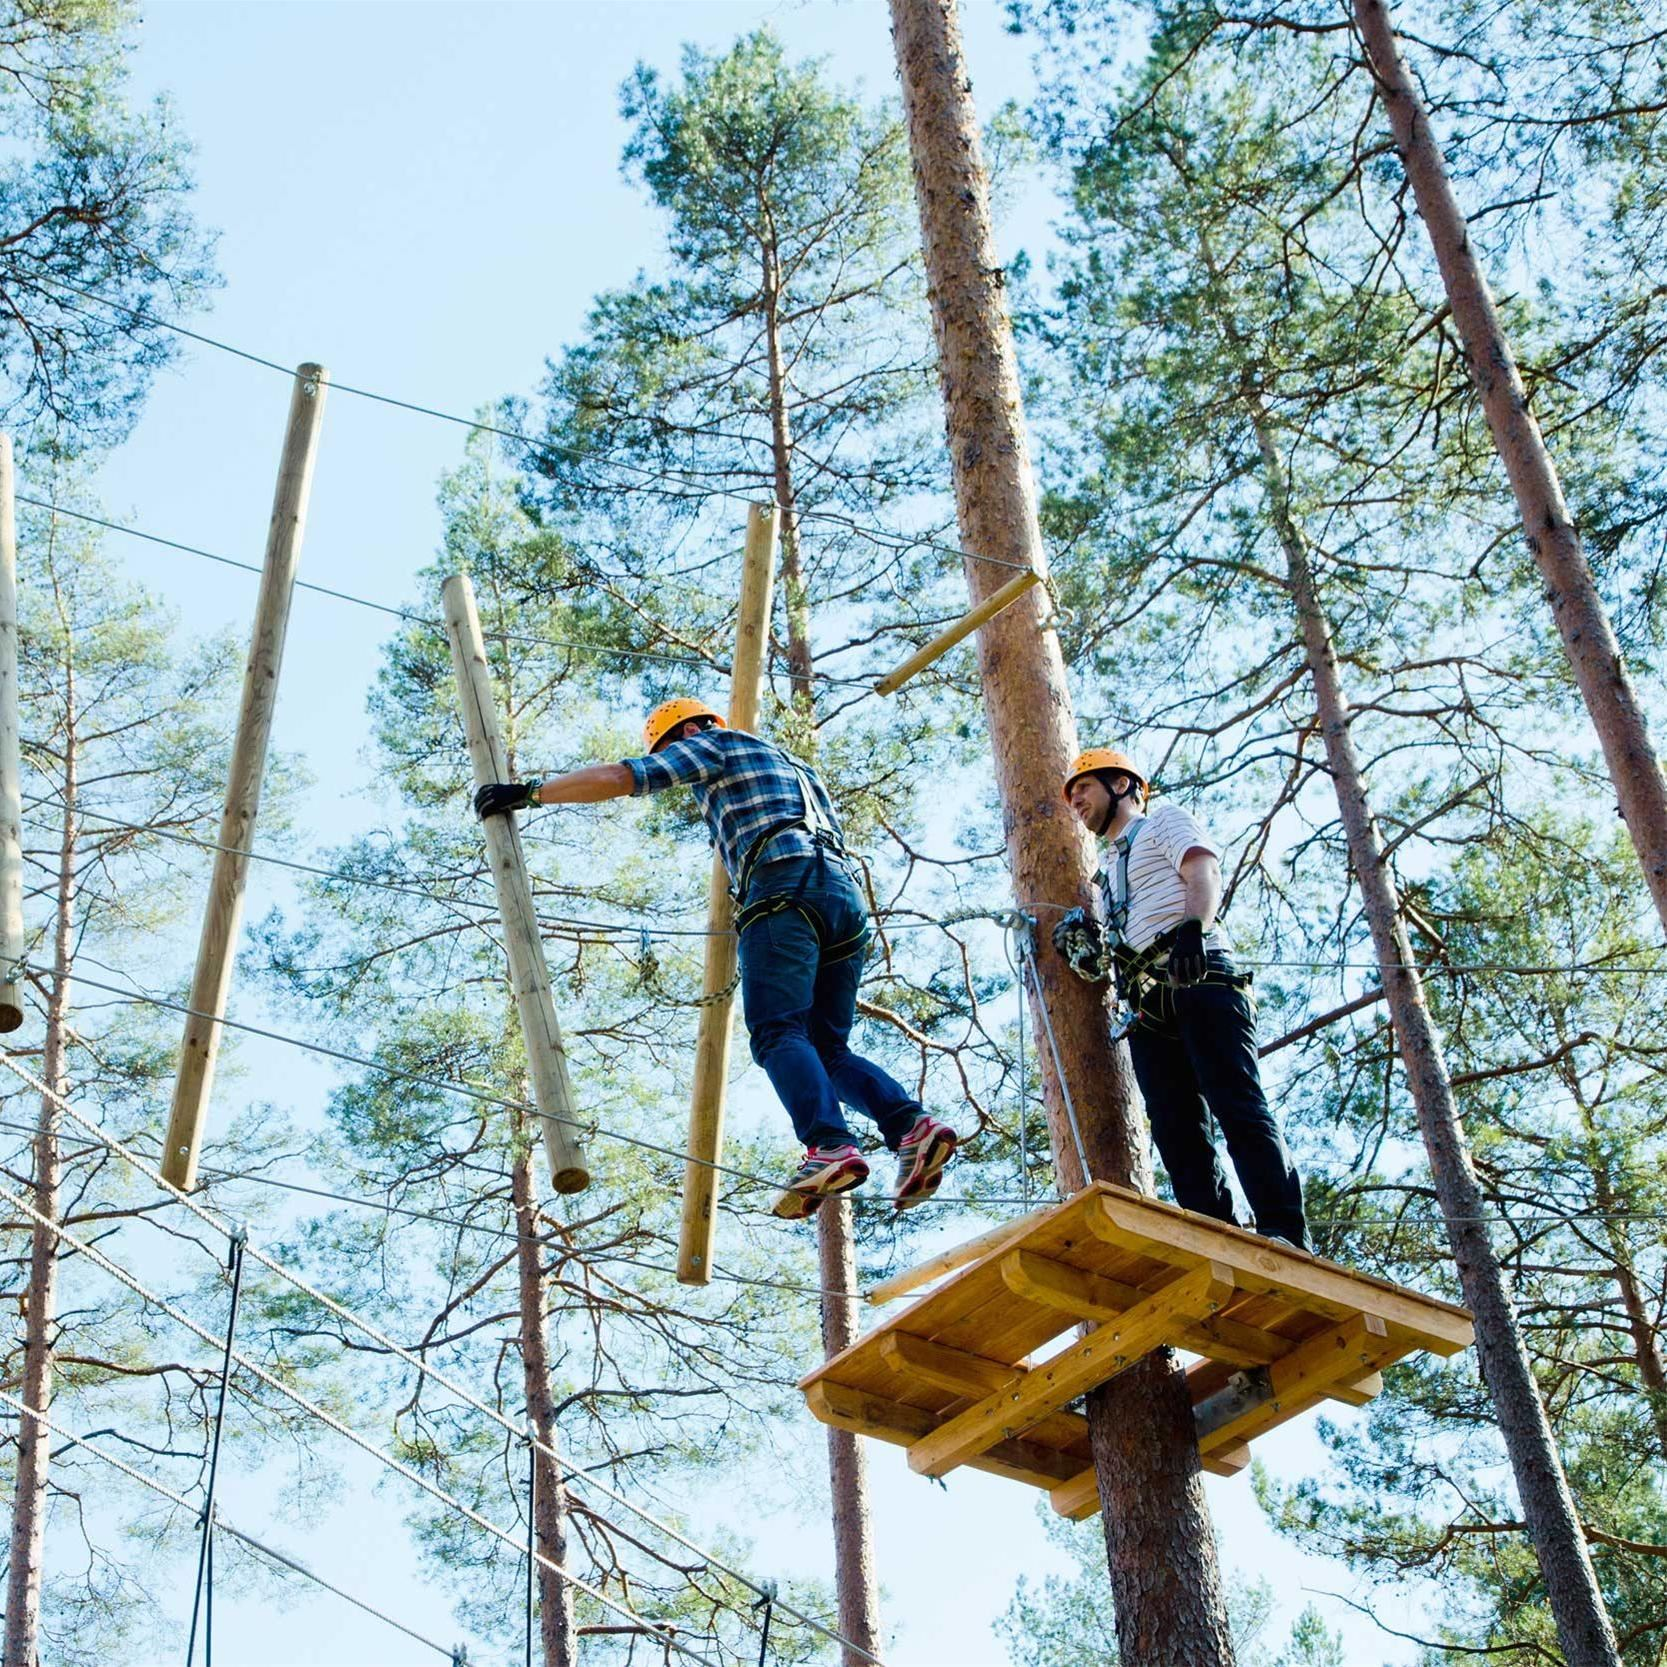 Isaberg Tree Top Adventure,  © Värnamo Näringsliv AB, Isaberg Tree Top Adventure